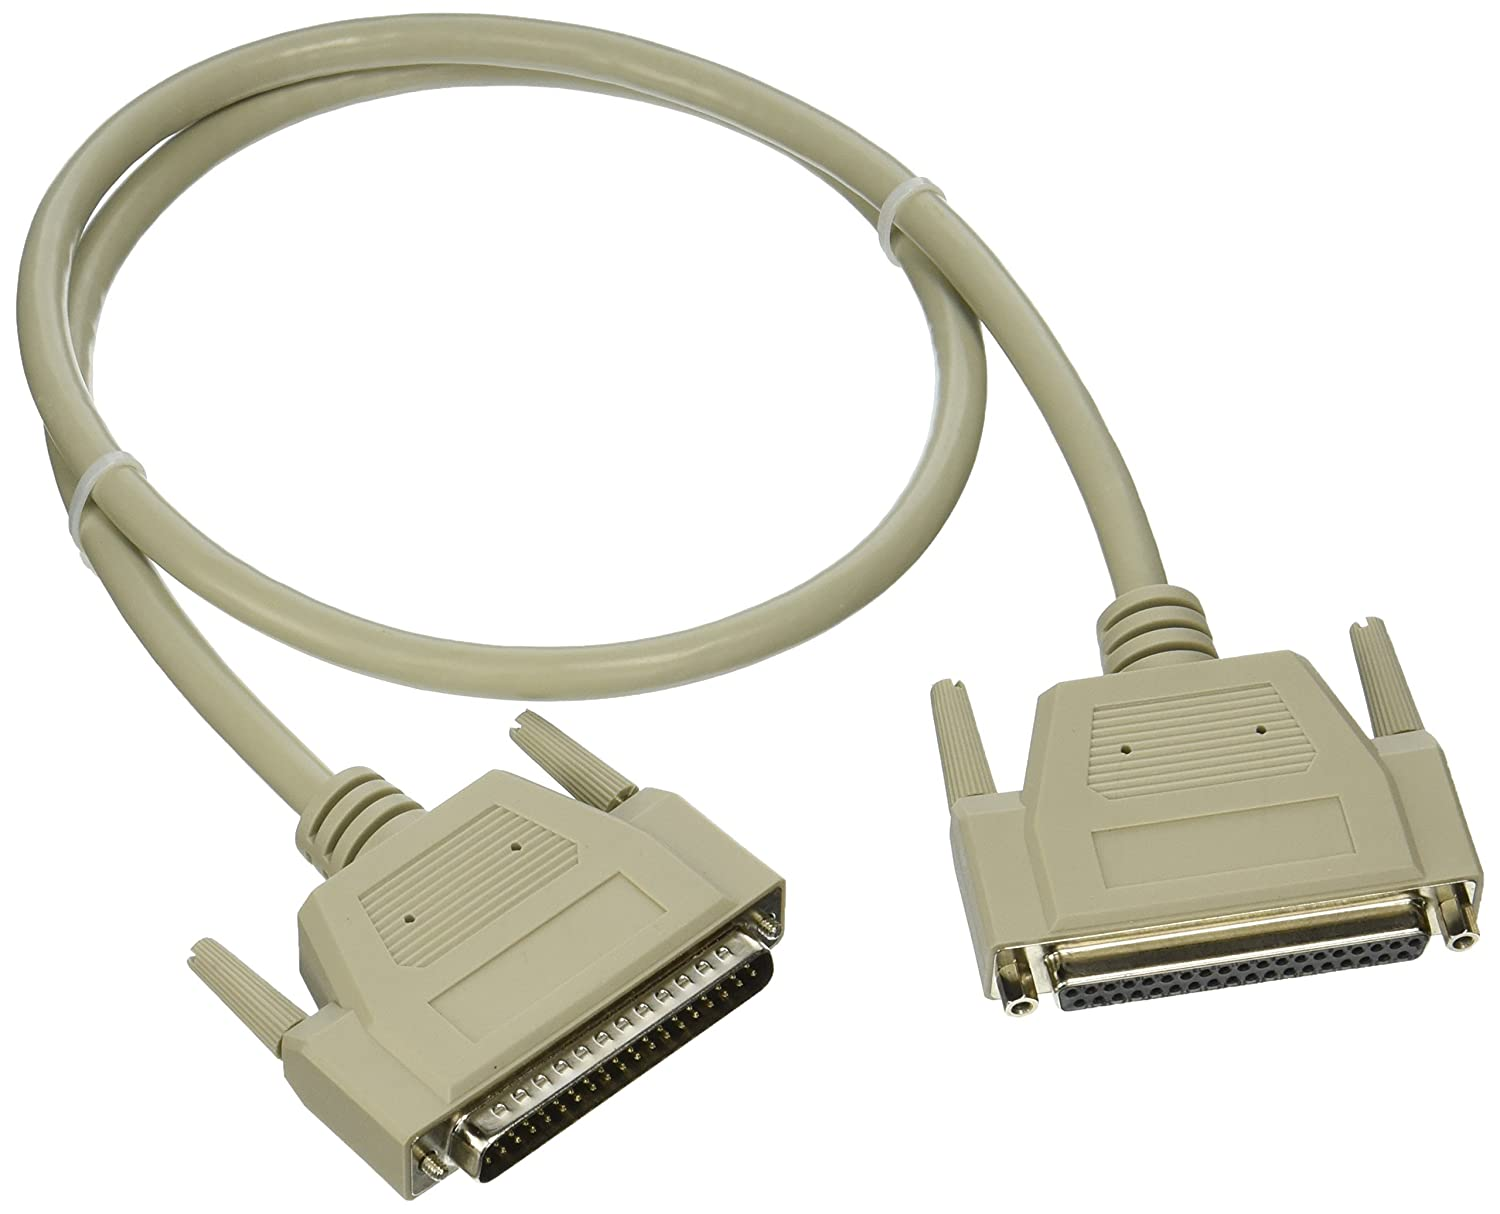 C2G 02688 DB37 M/F Serial RS232 Extension Cable, Beige (3 Feet, 0.91 Meters) C2g (Cables to Go)